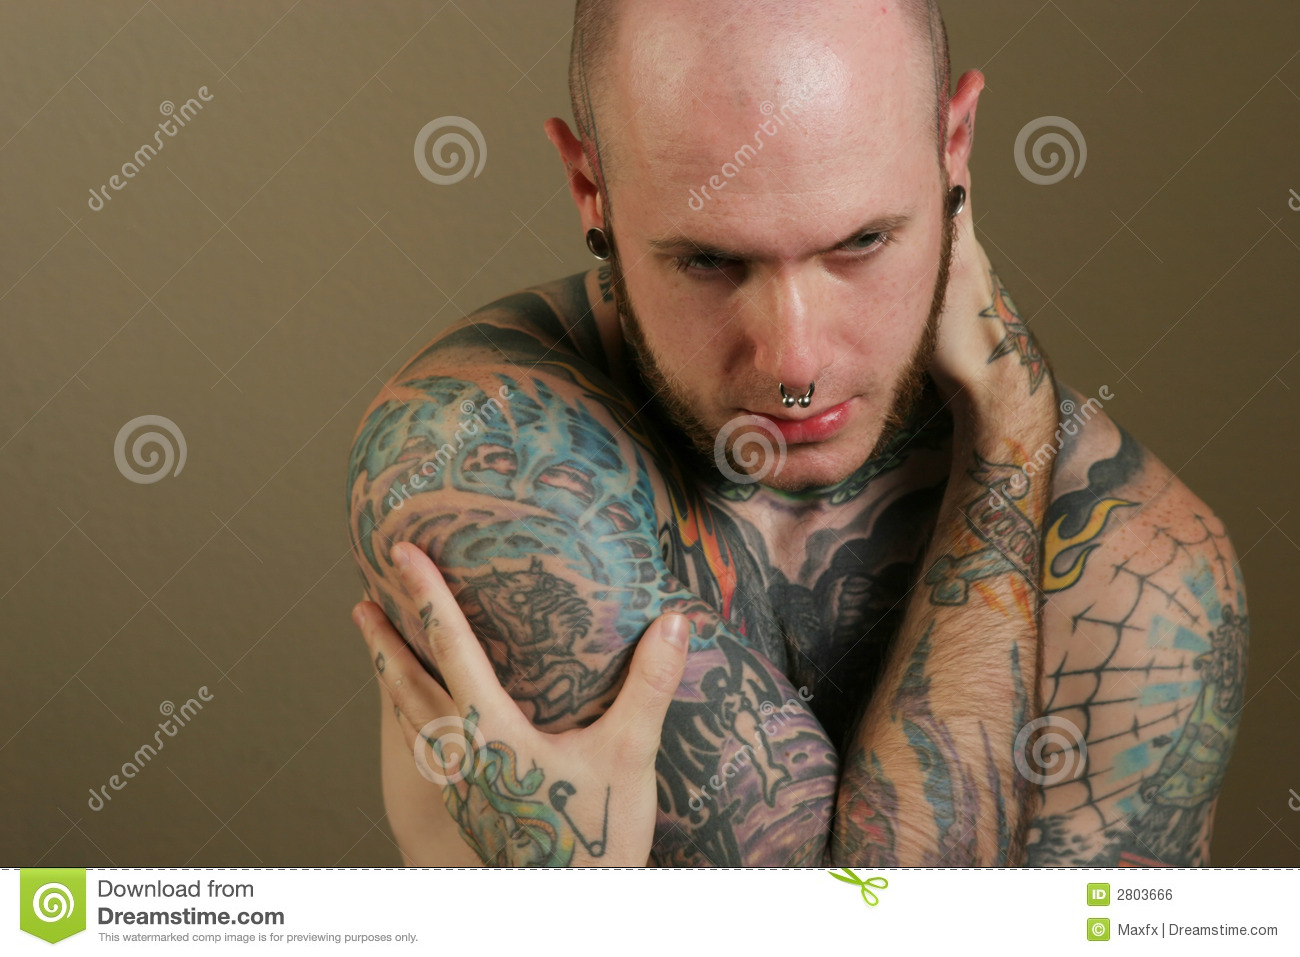 homme sexy de tatouage photo stock image du tatouage 2803666. Black Bedroom Furniture Sets. Home Design Ideas